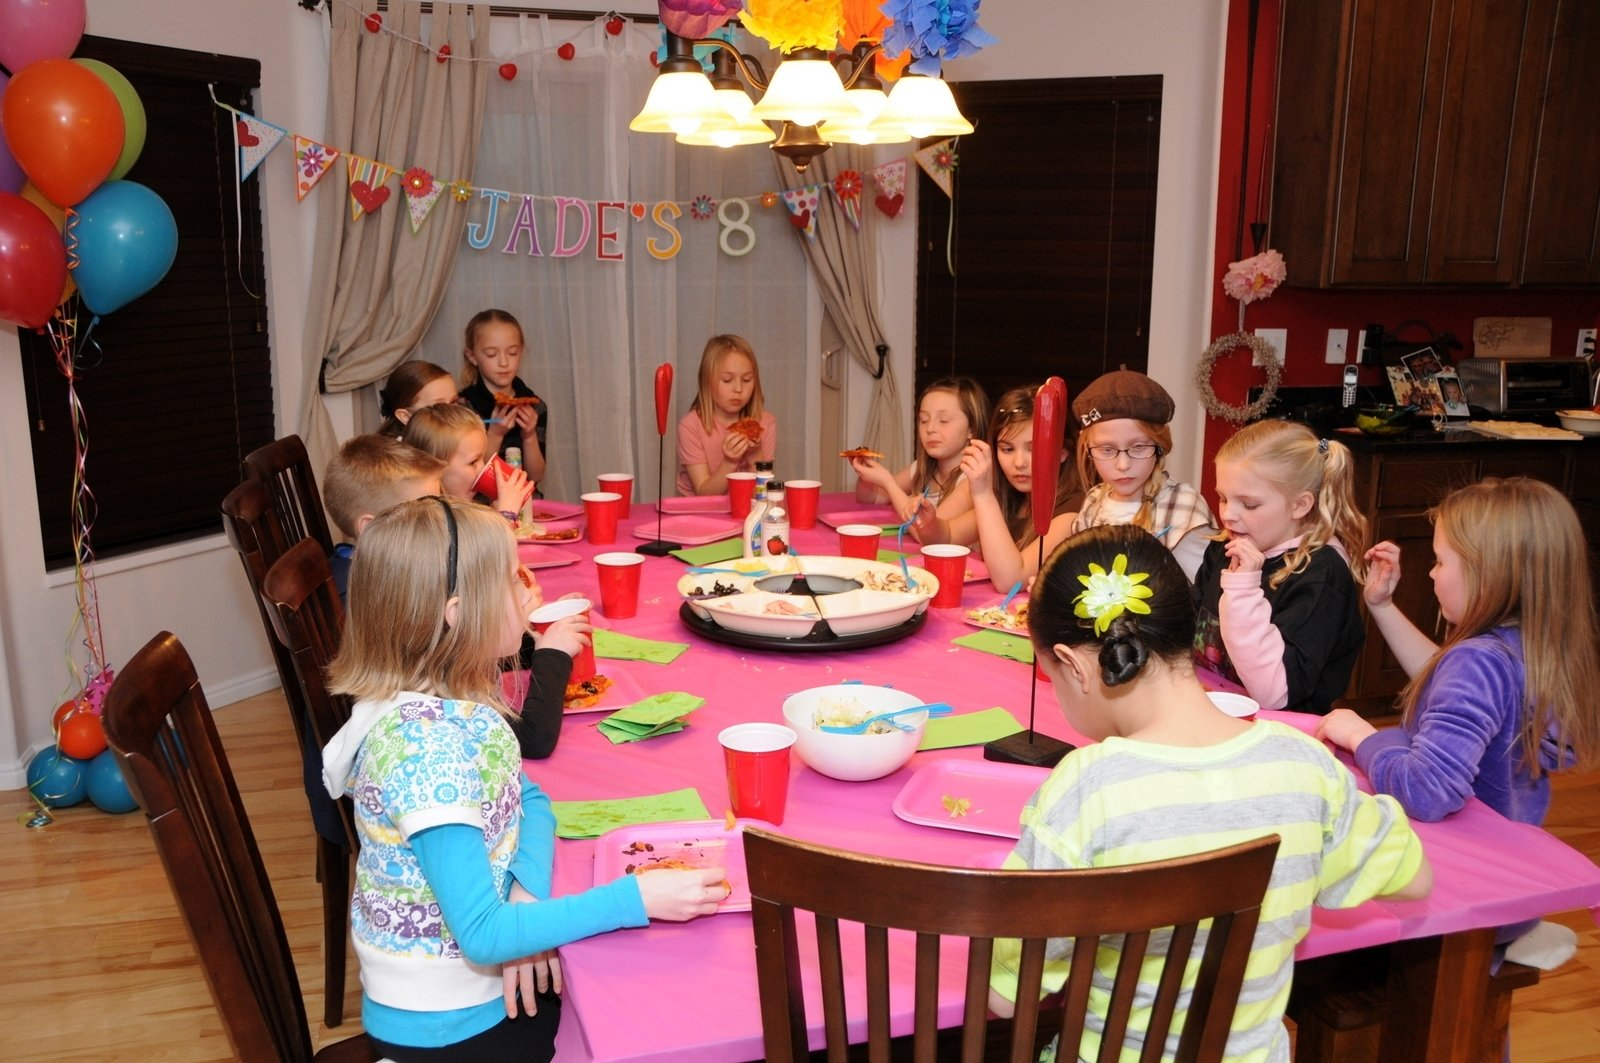 10 Attractive Birthday Party Ideas For 8 Year Old Girl 8 year old birthday party the family trifecta 8 2021